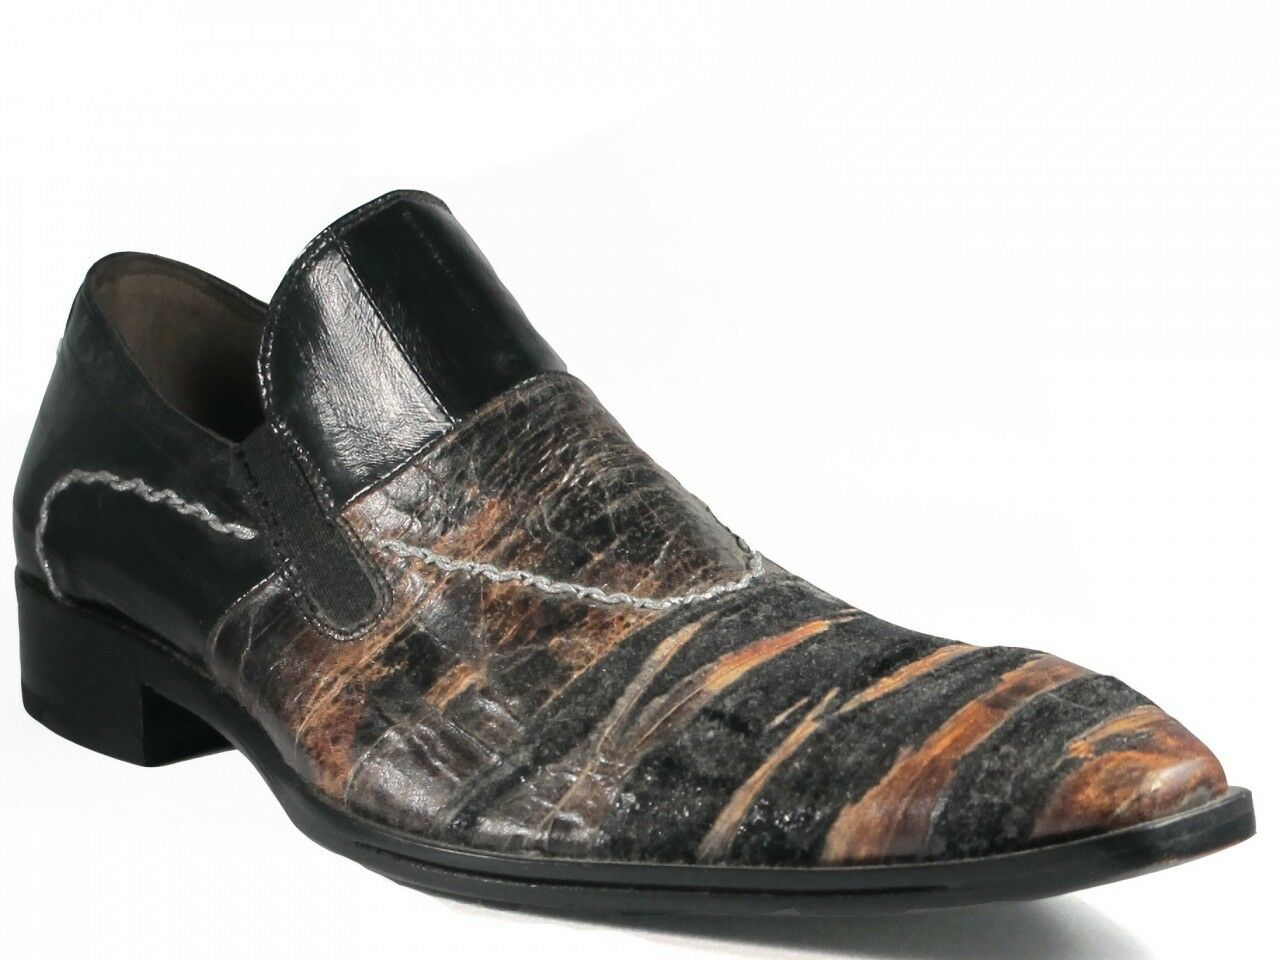 Davinci Italian Men's Dressy Slip-on scarpe leather 2511